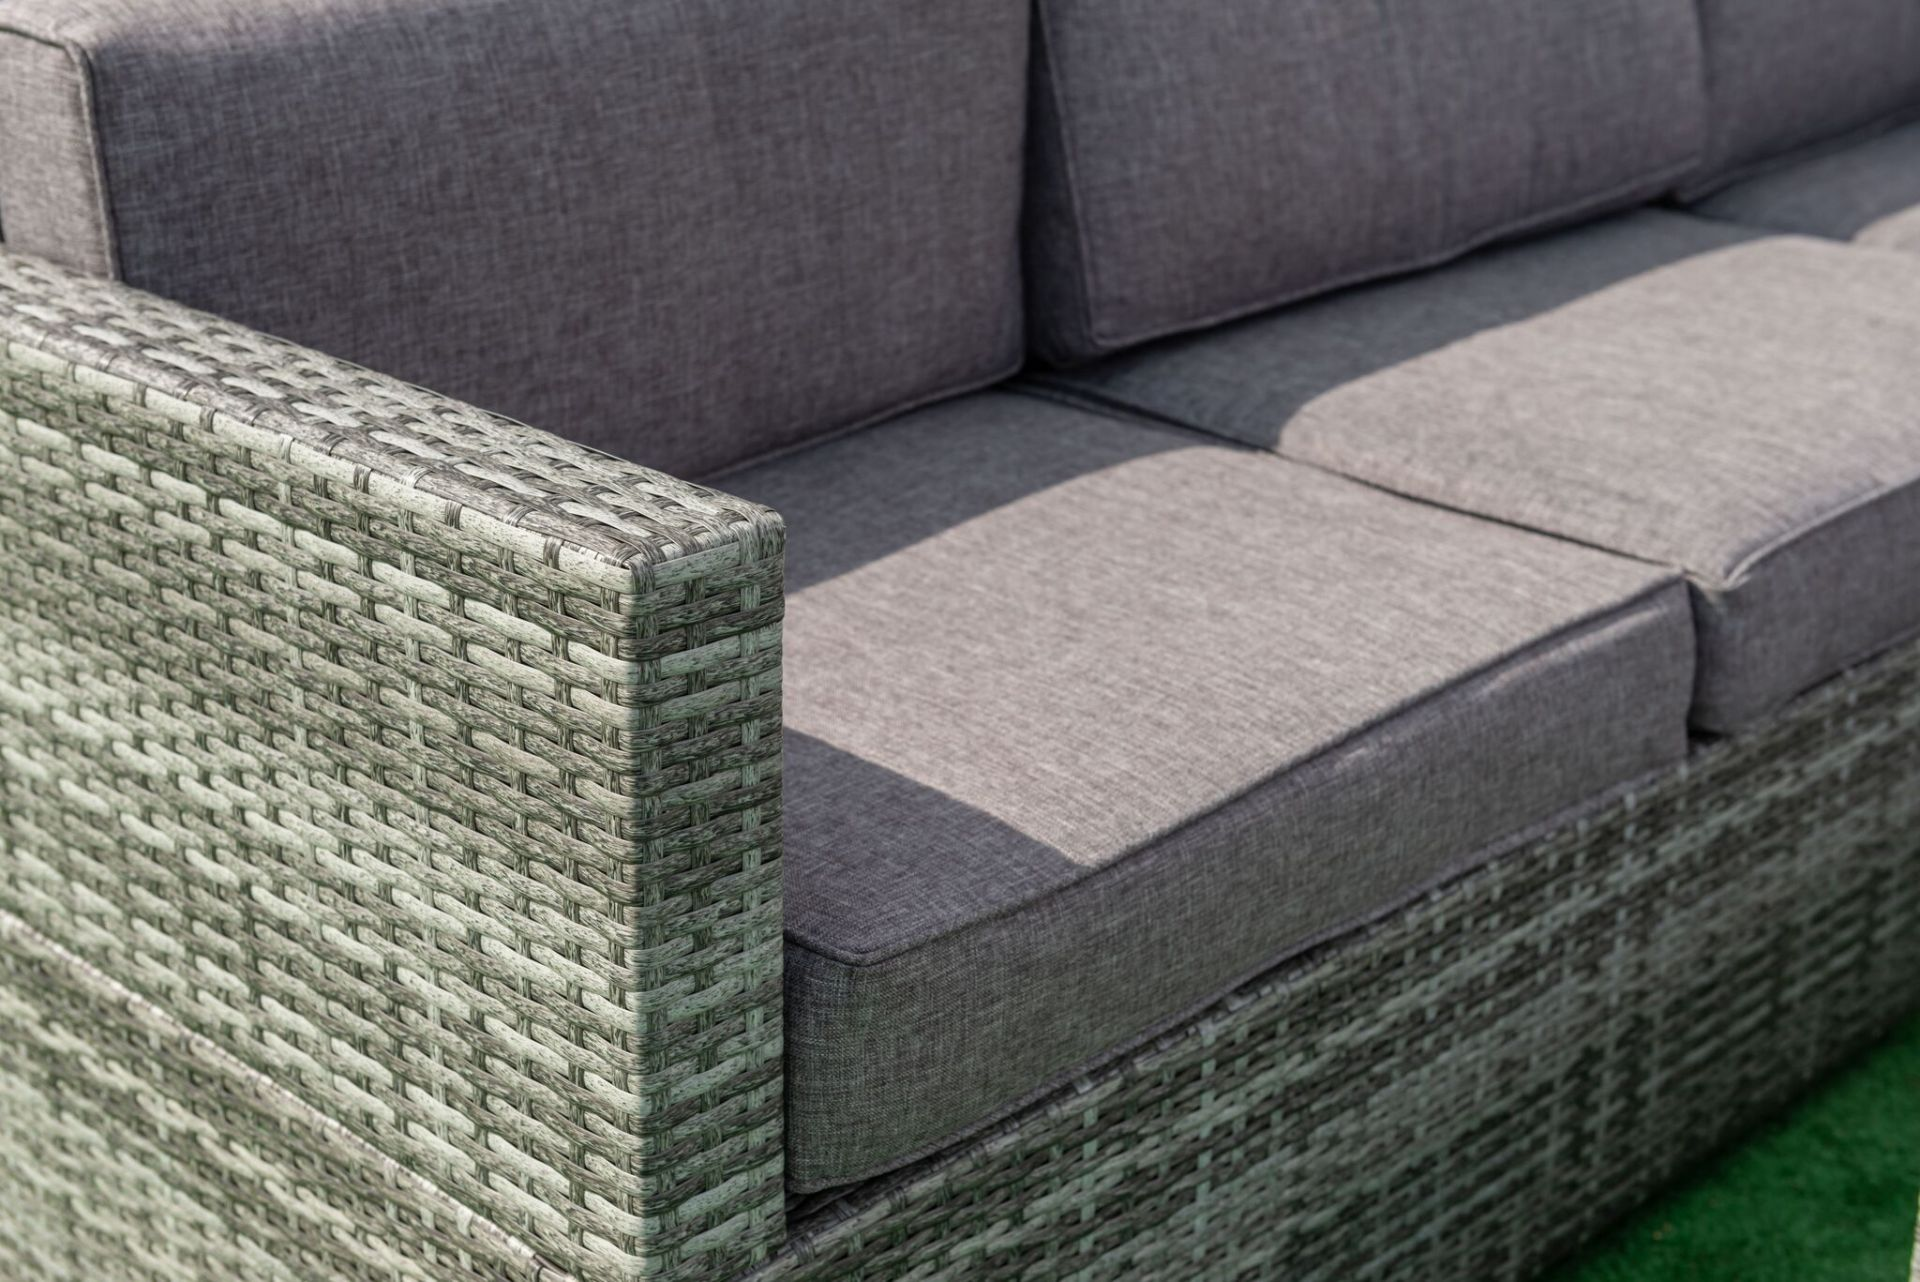 Lot 12 - Newquay Corner Sofa Set in a Mixed Grey Pu Rattan with Contrasting Grey